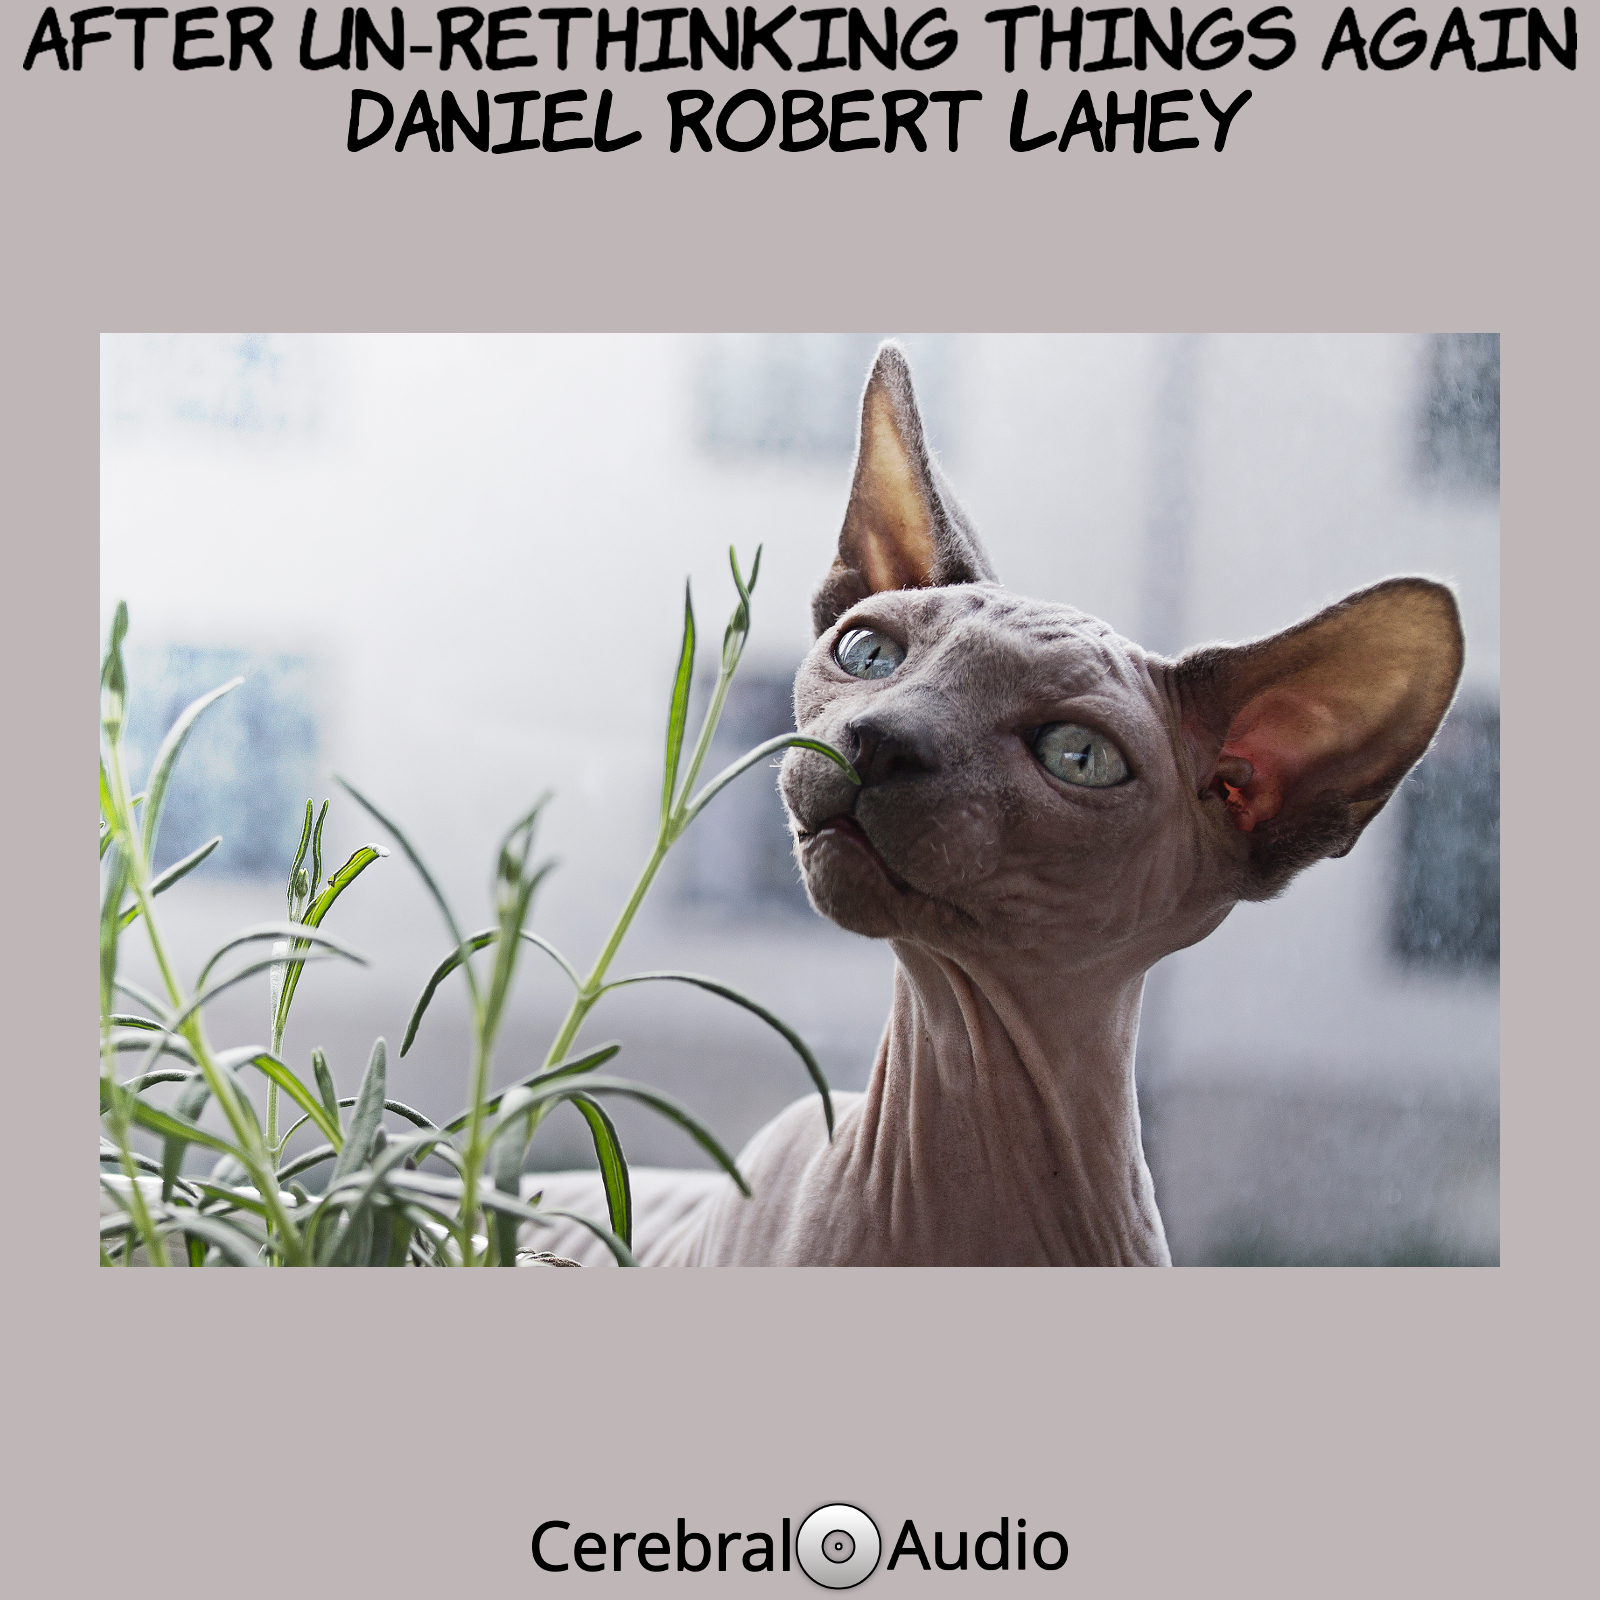 After Un-Rethinking Things Again